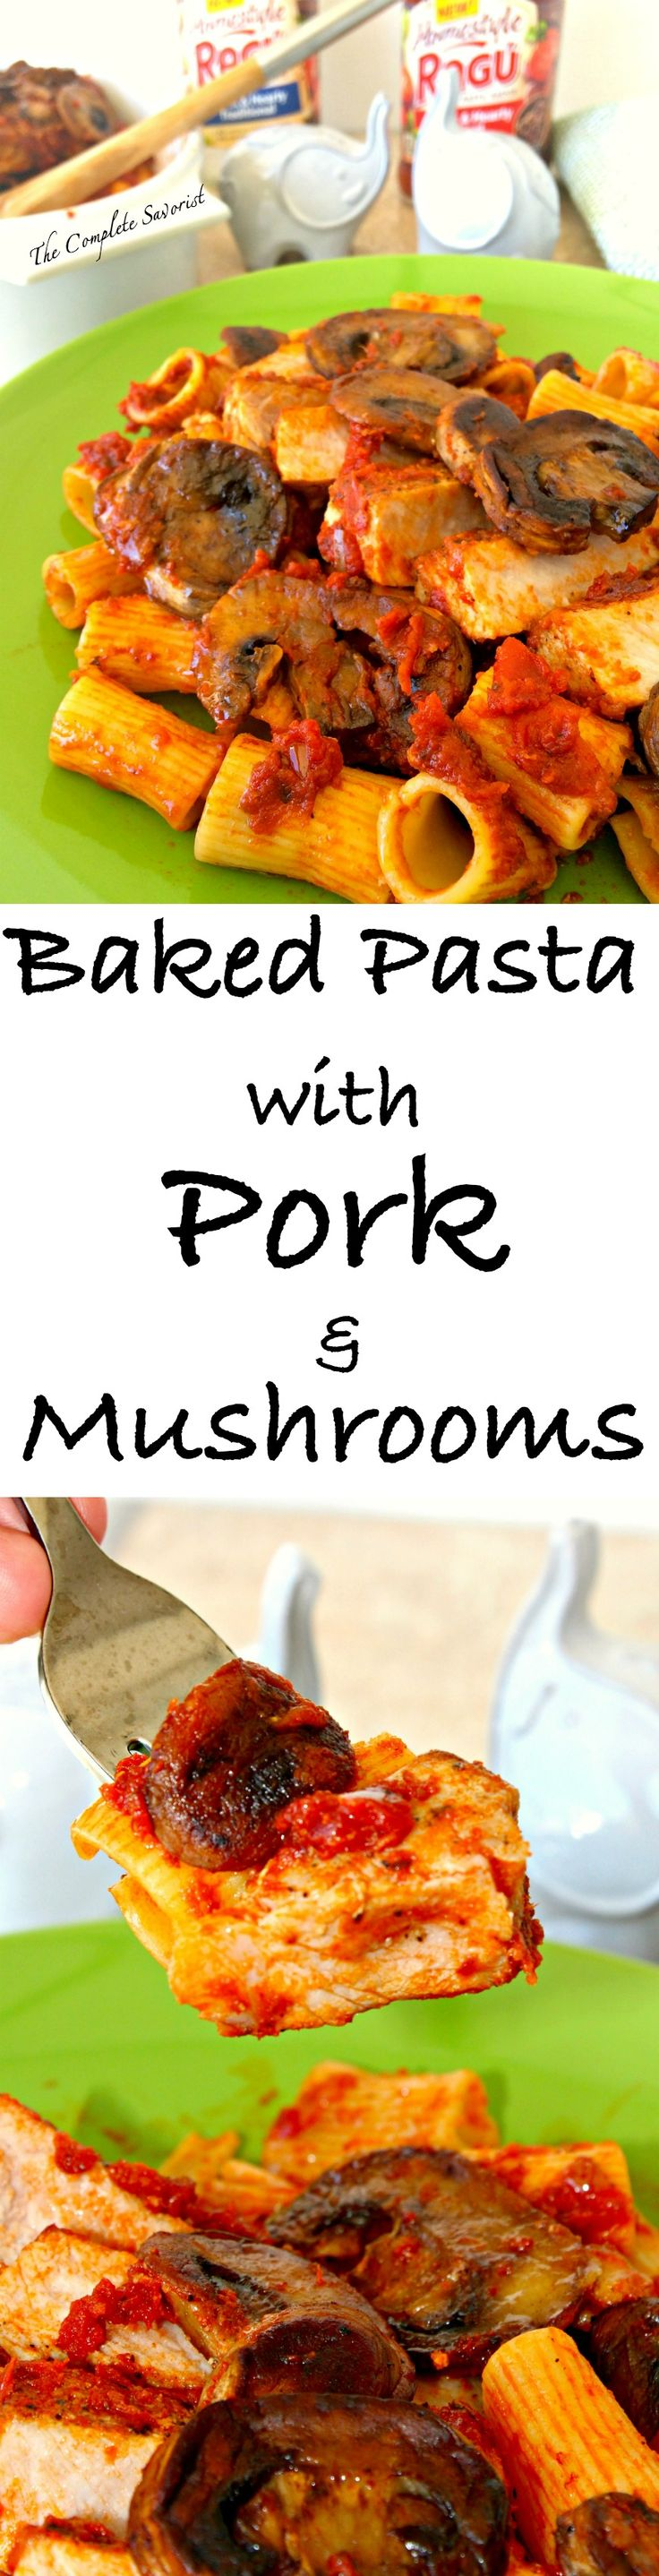 Baked Pasta with Pork and Mushrooms ~ Pan seared seasoned thick-cut pork chops, hearty tomato sauce, and tube pasta baked topped with sautéed mushrooms ~ The Complete Savorist #SimmeredinTradition ad